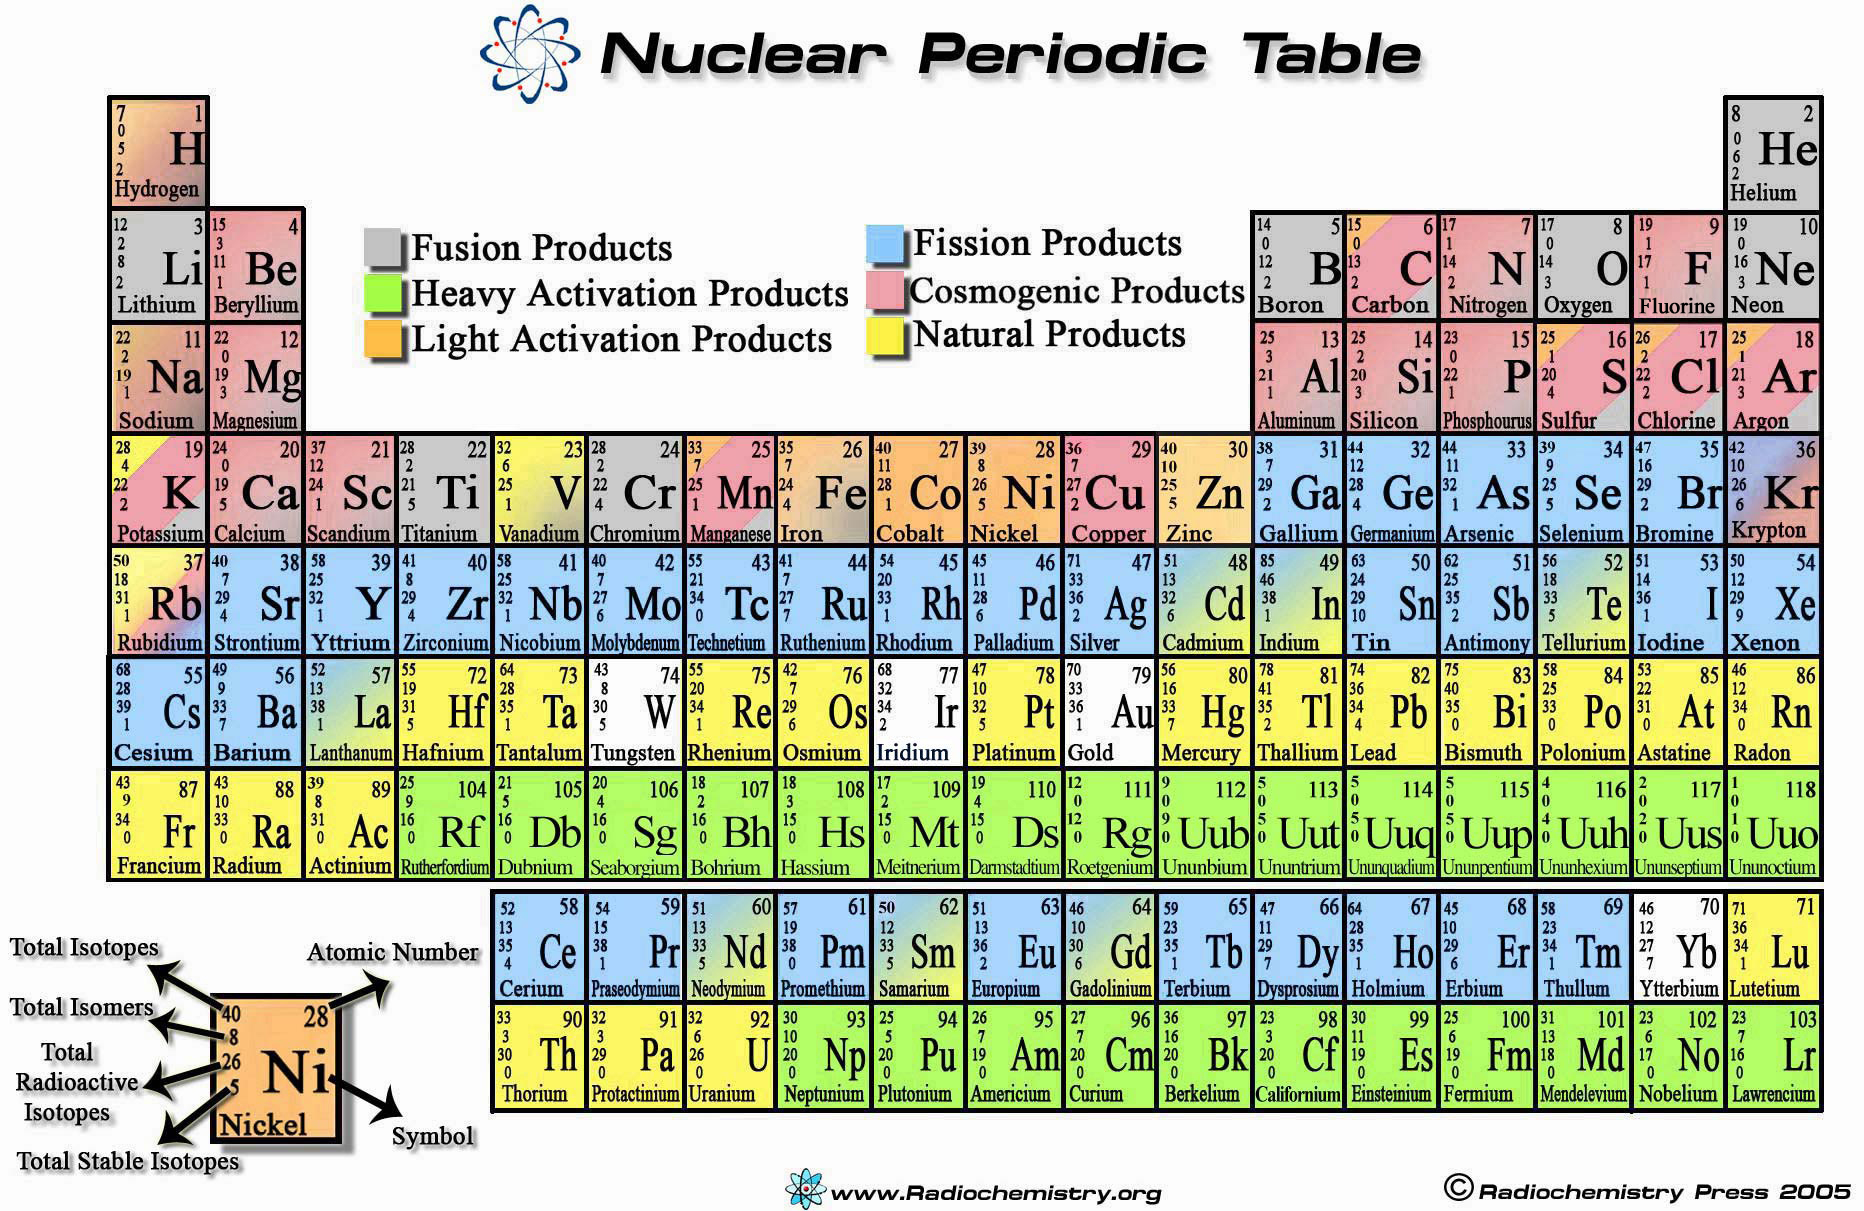 Nuclear periodic table from the radiochemistry society download hi resolution version urtaz Choice Image